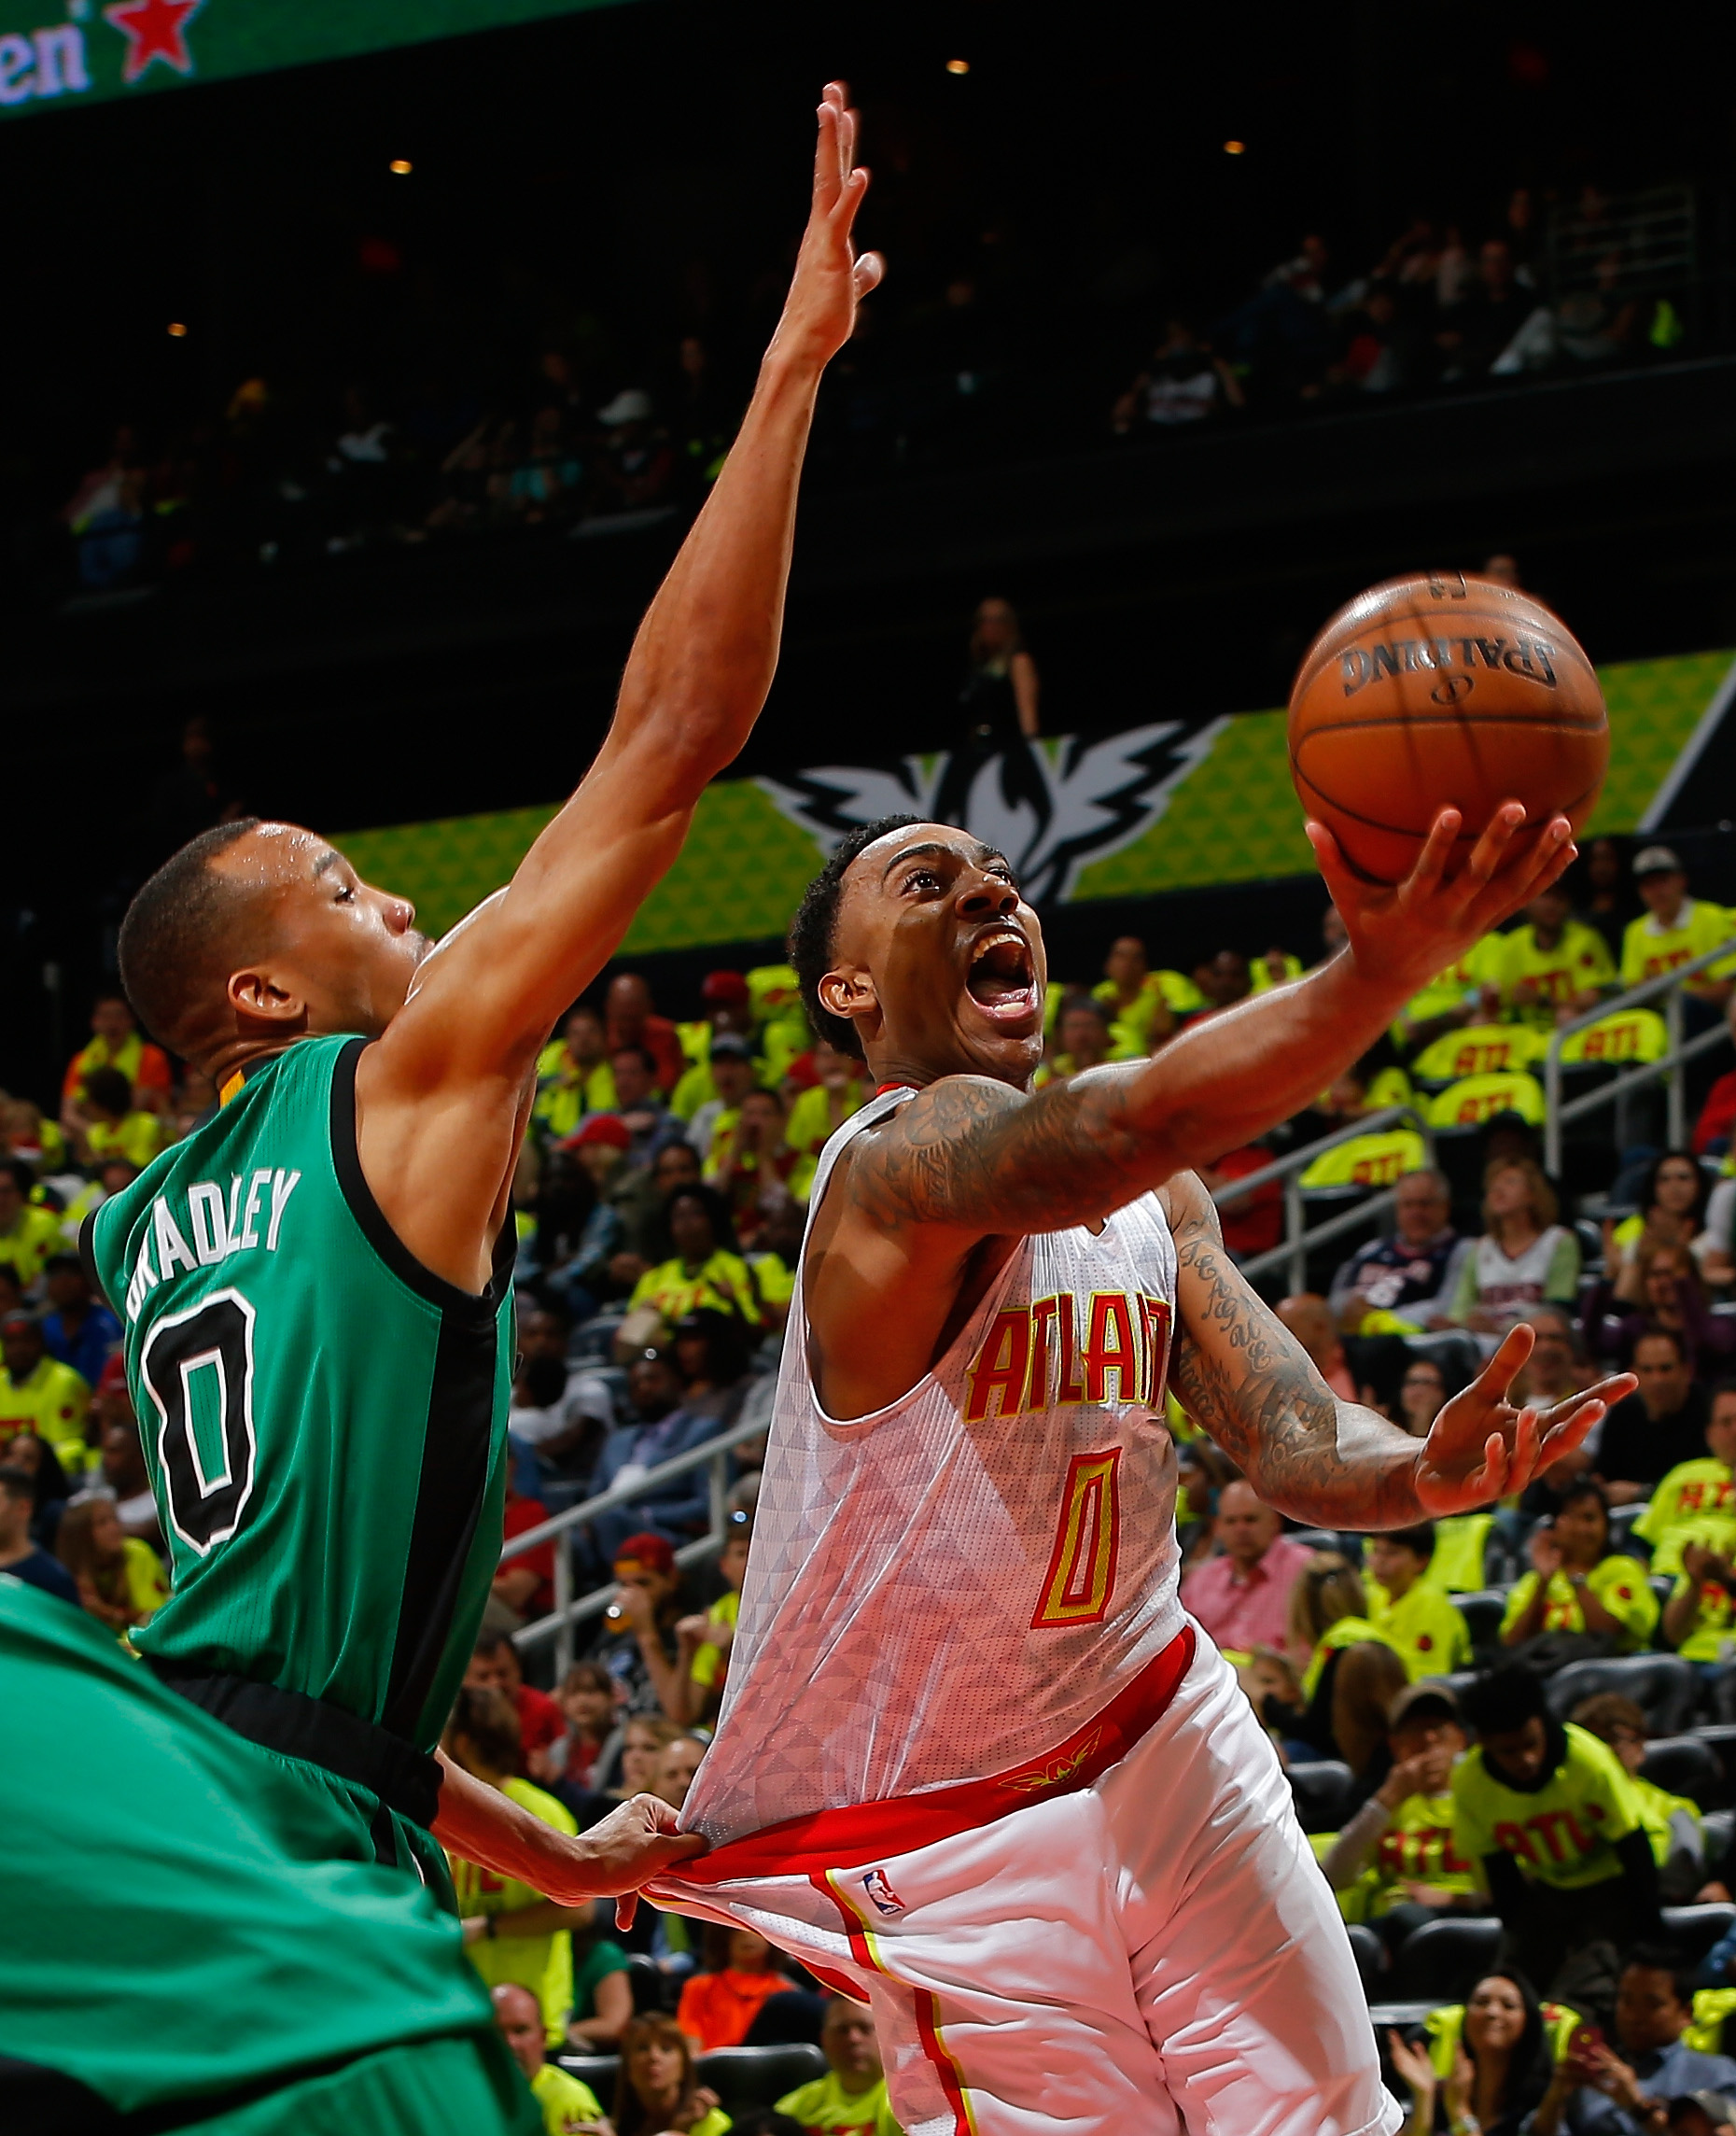 ATLANTA, GA - APRIL 16:  Jeff Teague #0 of the Atlanta Hawks lays in a basket against Avery Bradley #0 of the Boston Celtics in Game One of the Eastern Conference Quarterfinals during the 2016 NBA Playoffs at Philips Arena on April 16, 2016 in Atlanta, Ge